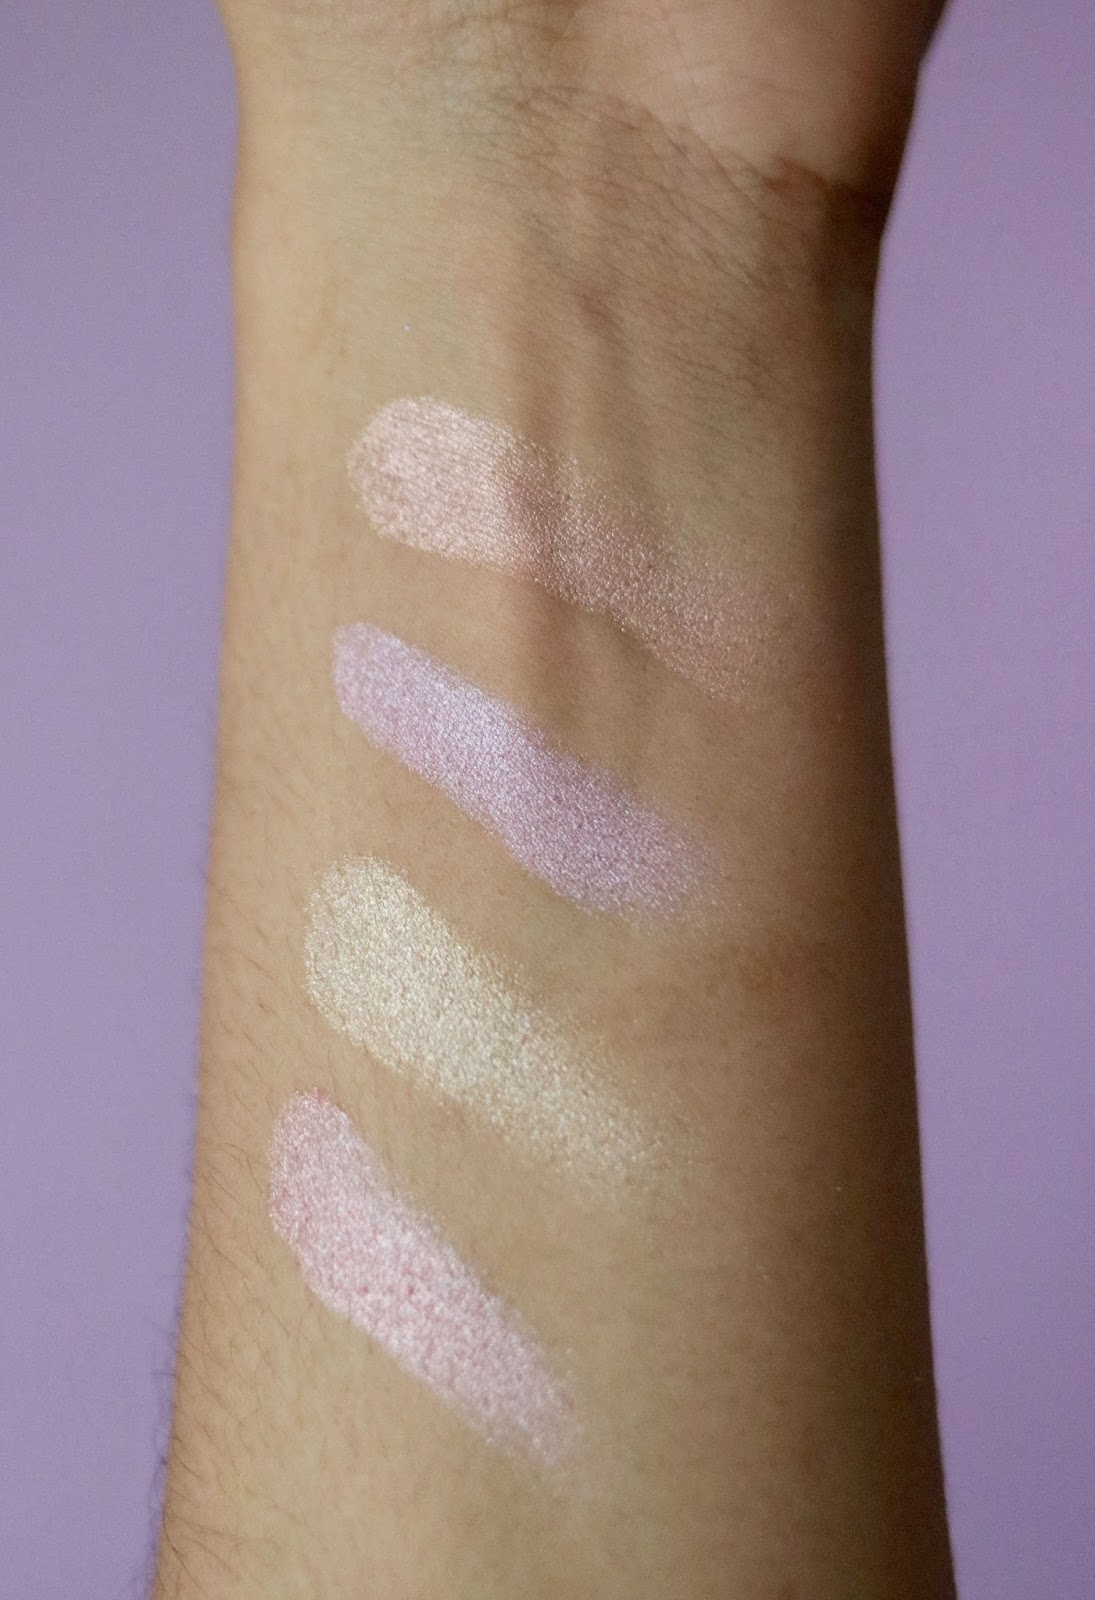 SPRING 2.0, kiko milano ,rose mademoiselle , rosemademoiselle, blog beauté , paris , kiko milano, kiko , Spring 2.0, Collection Limitée 2017 , Natural Colour Blush ,  Enlumineur Natural Colour Highlighter , Revue , Avis, Test Produit ,  Swatch,